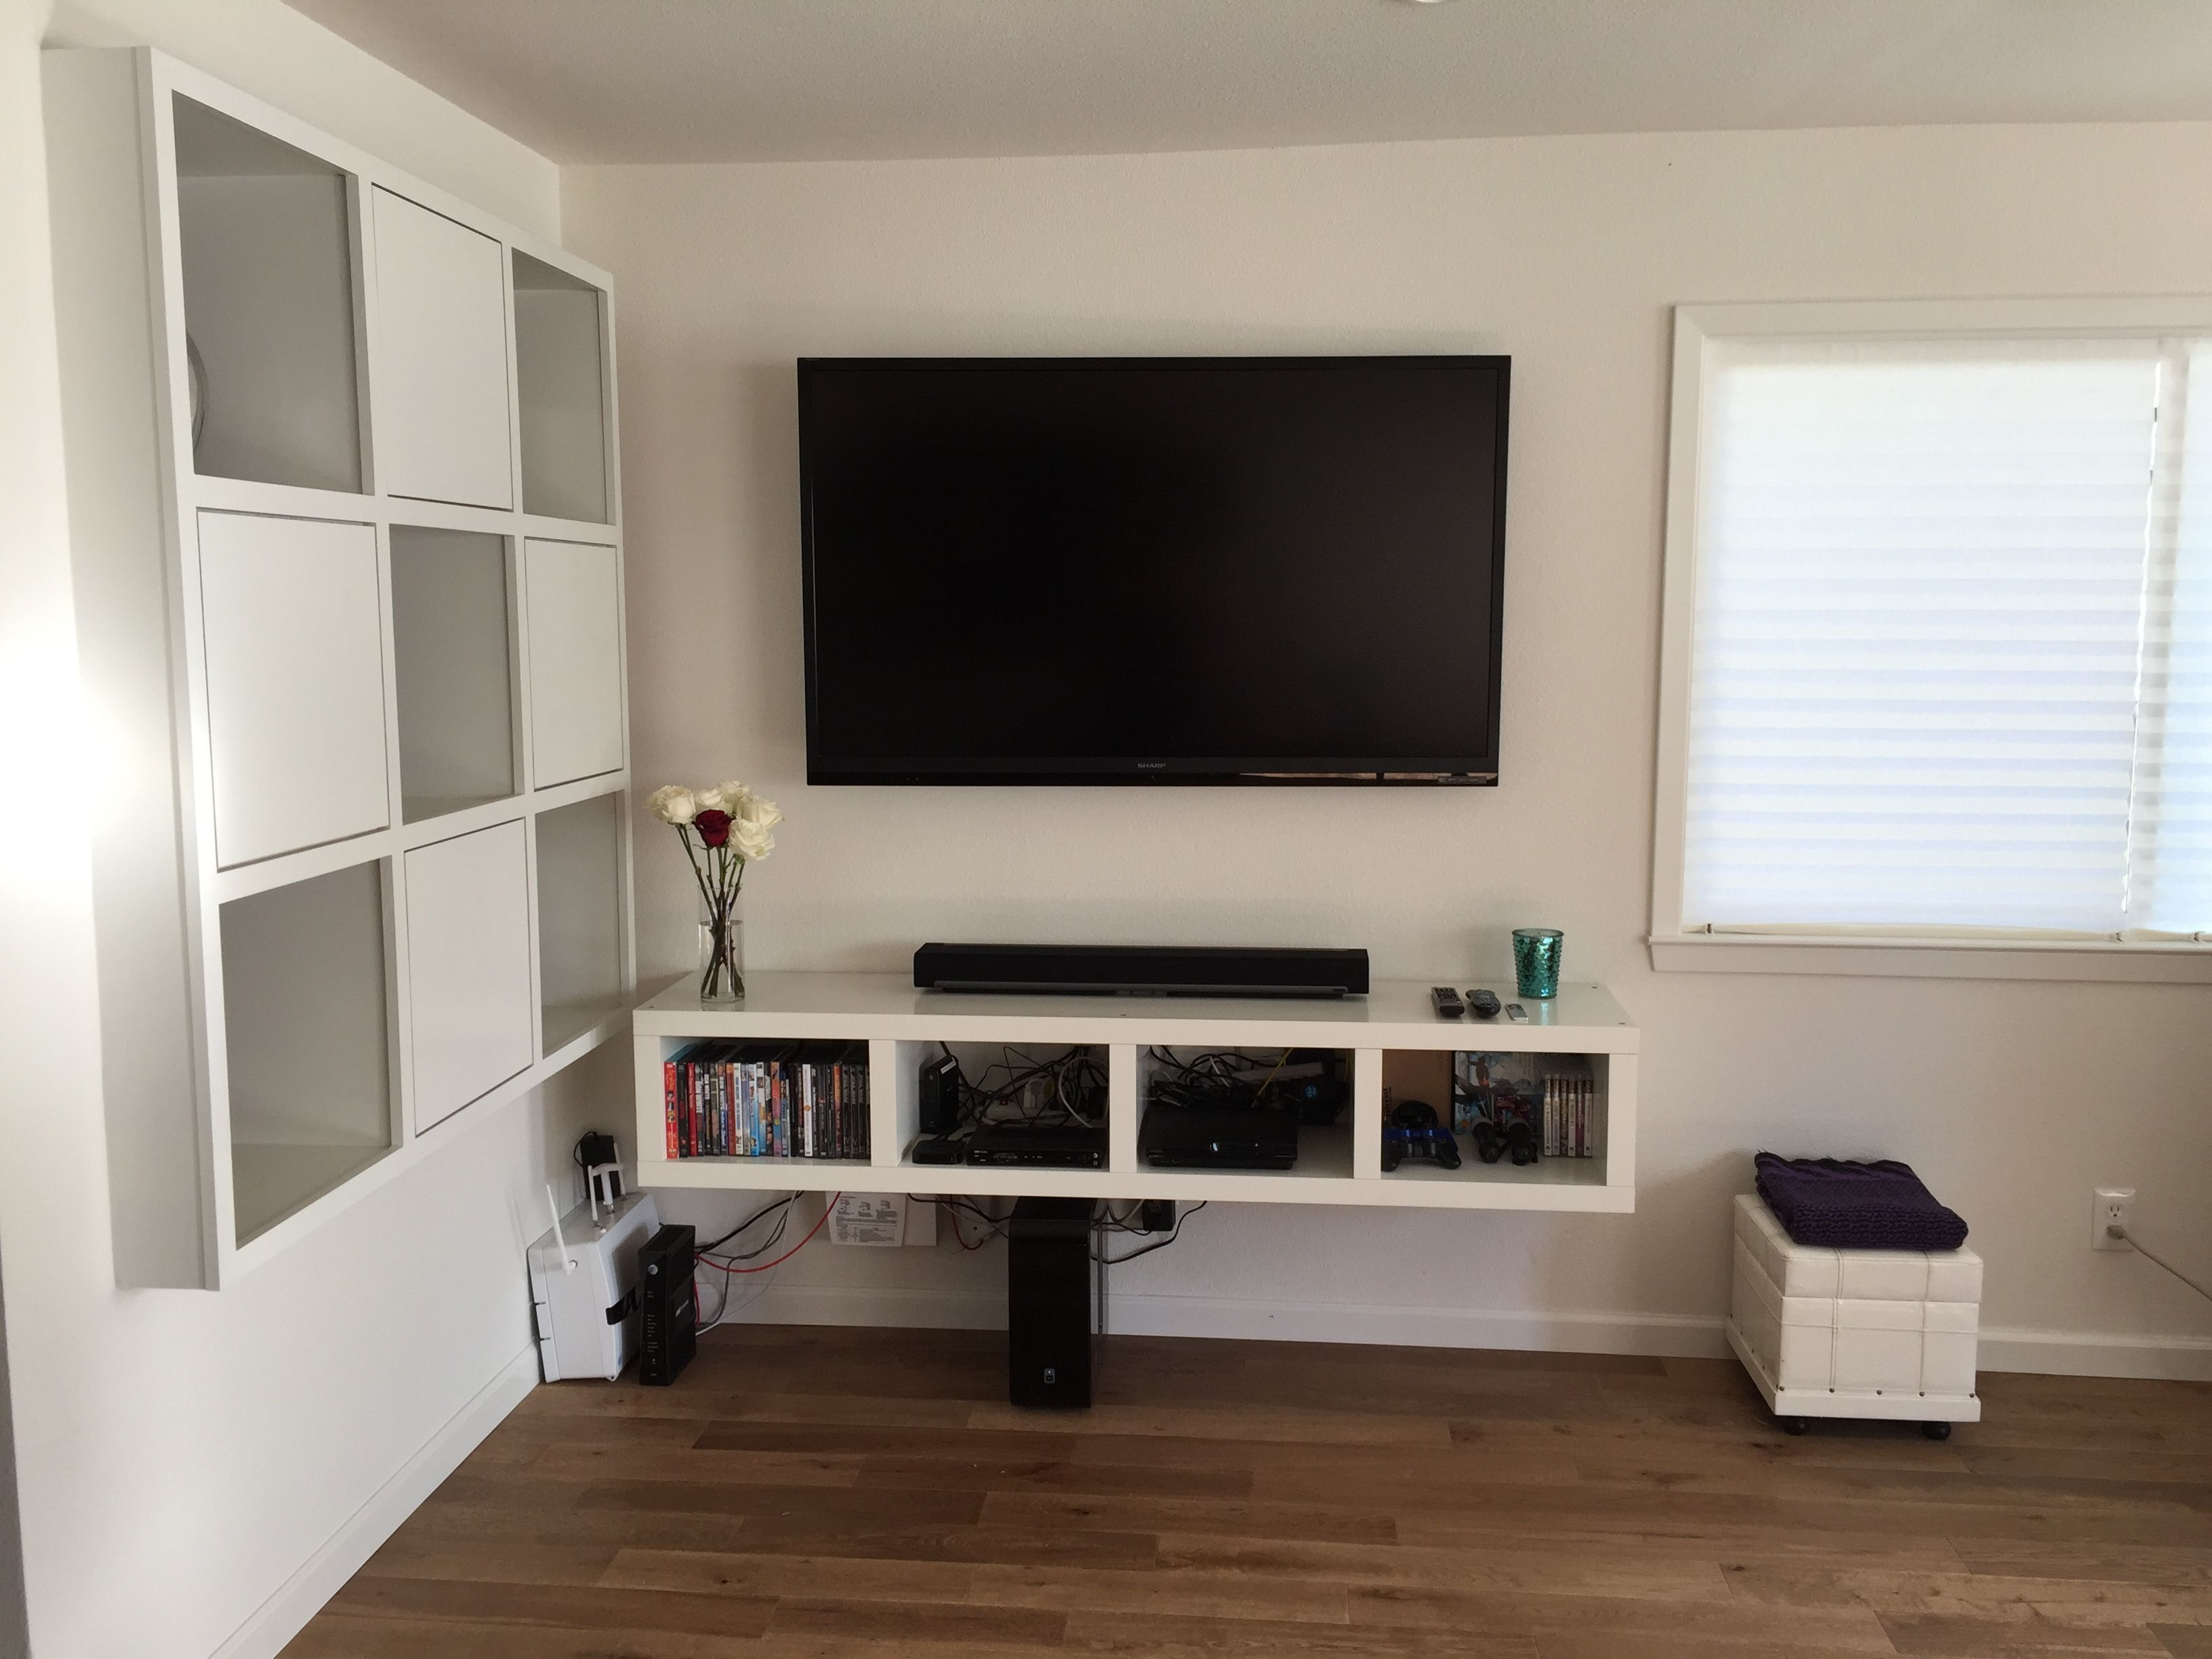 Admirable Ikea Bookshelf Converted To Floating Tv Stand Expedit Download Free Architecture Designs Scobabritishbridgeorg